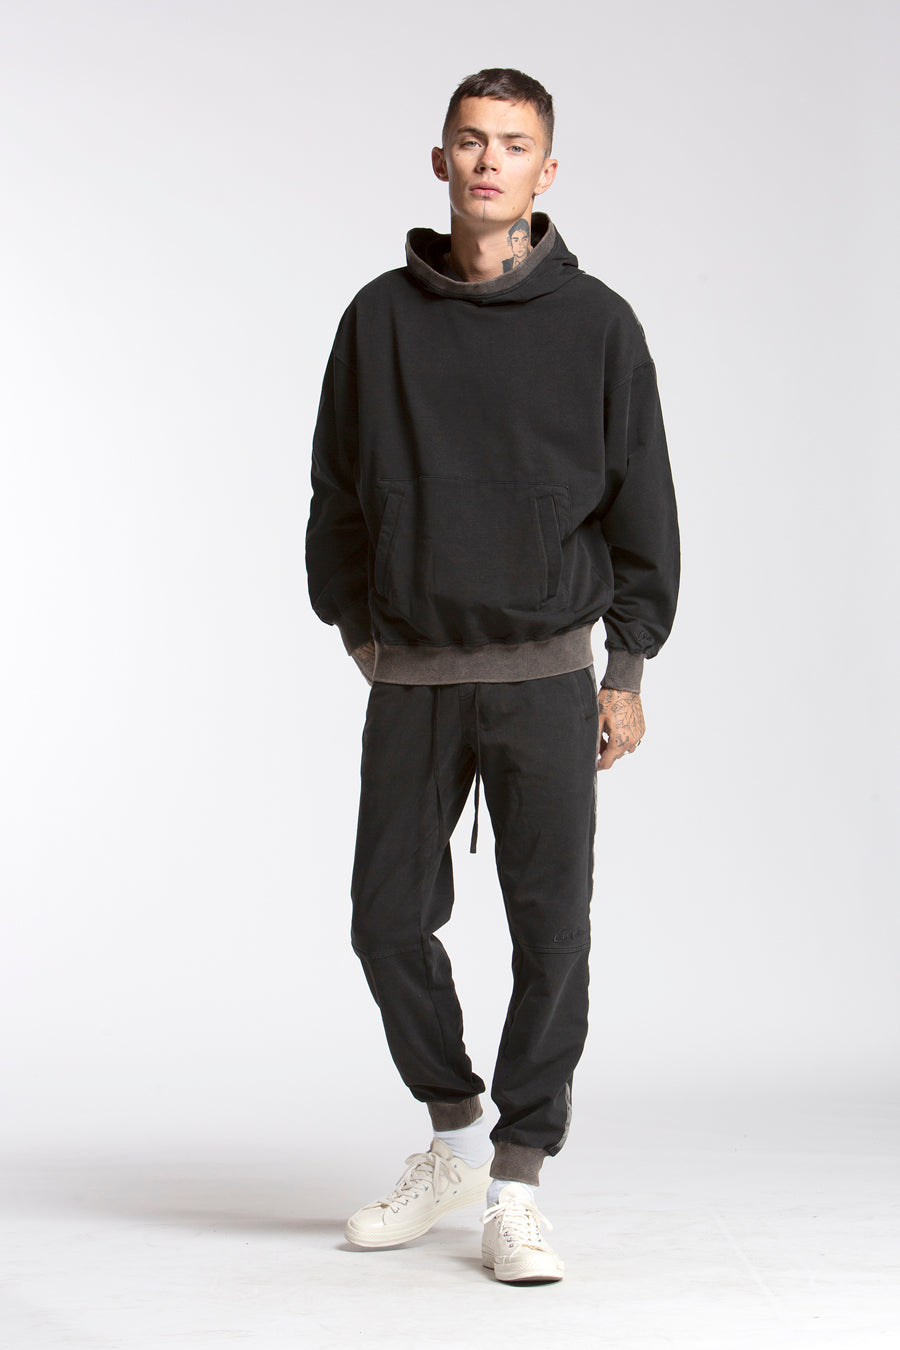 candorofficial - Washed Hoodie, Black - Sweatshirts